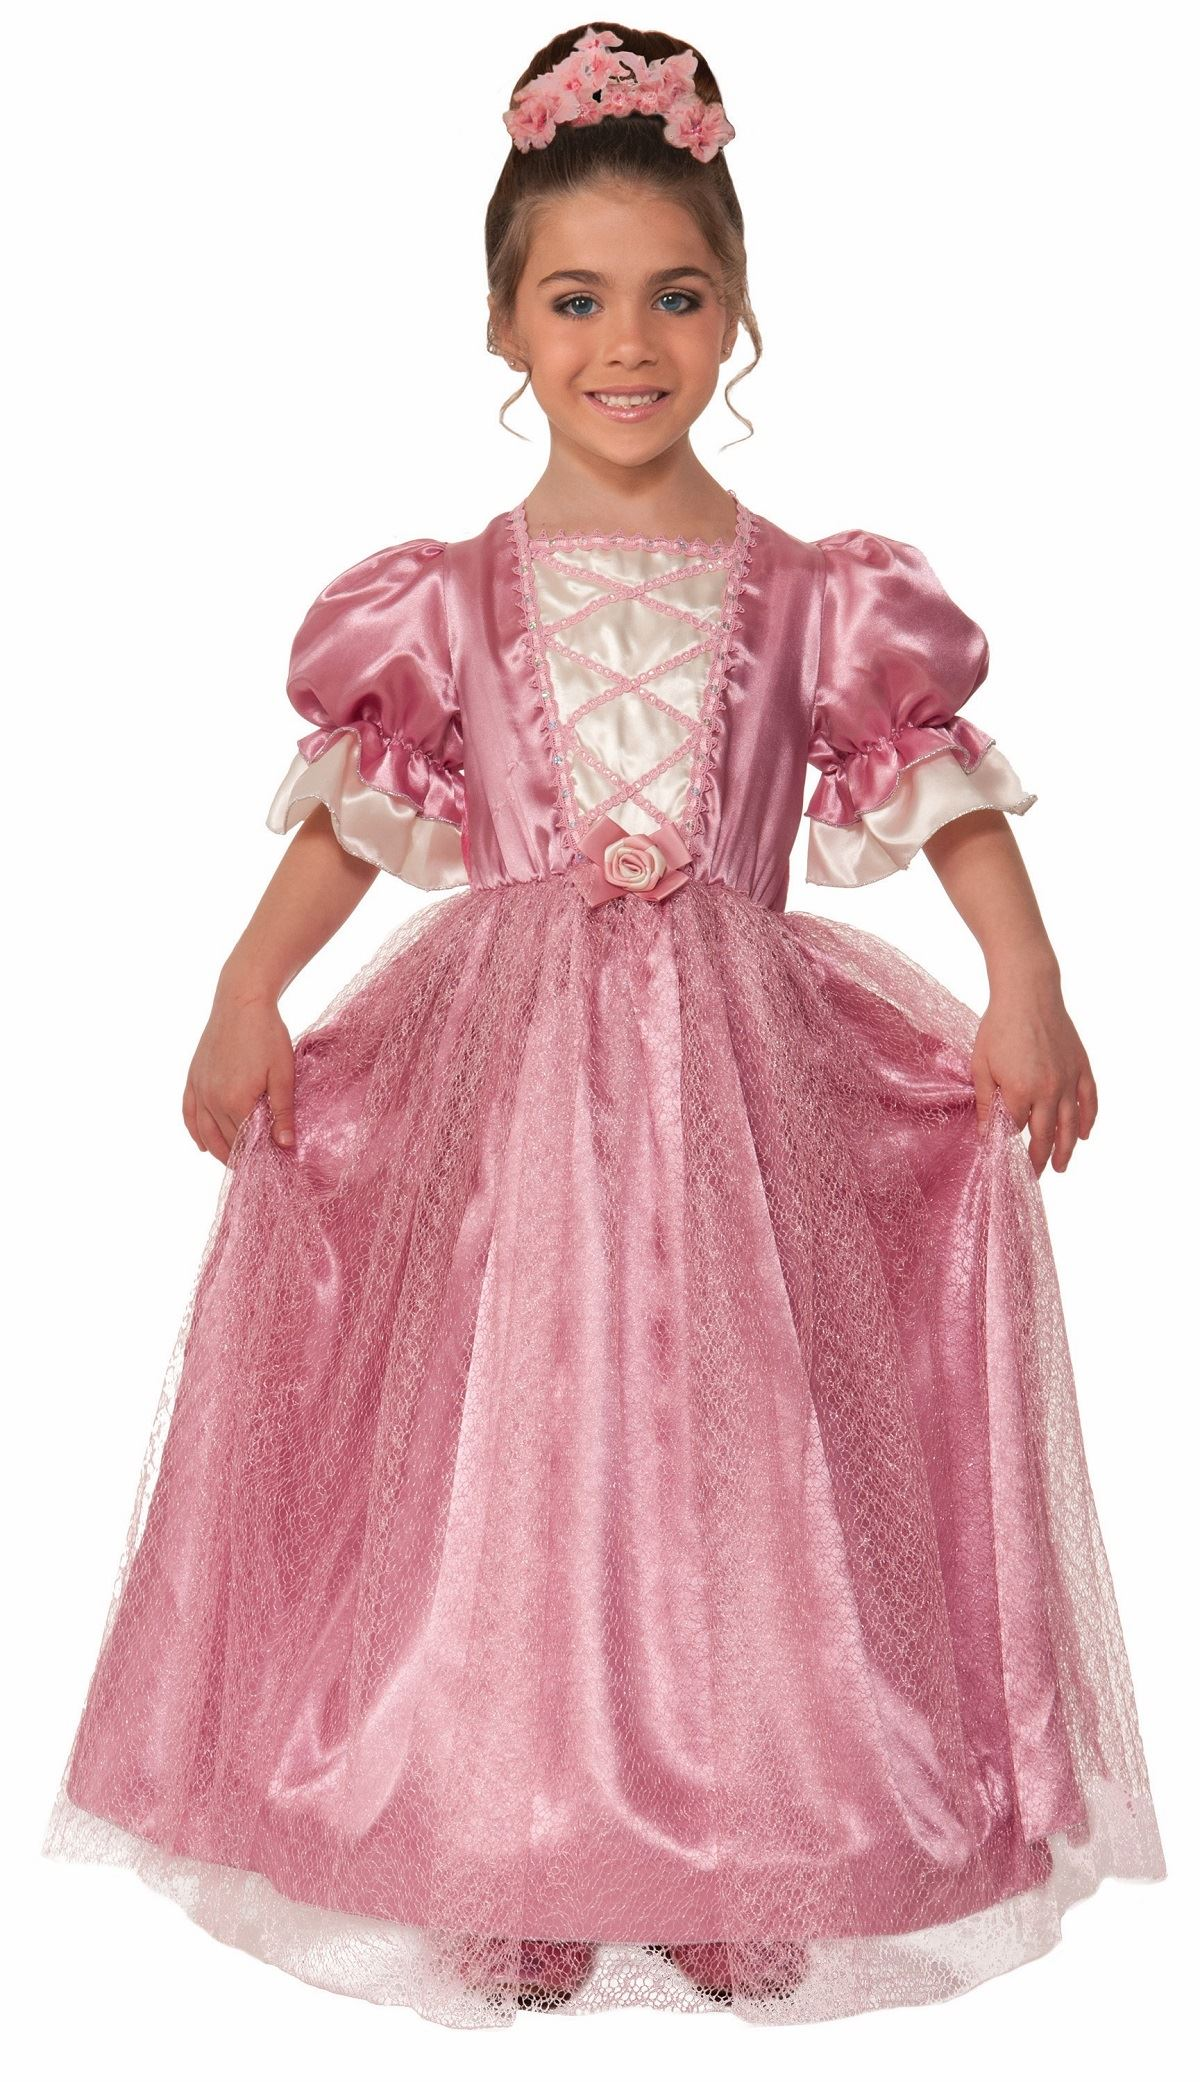 Victorian Dresses for Girls | Dress images